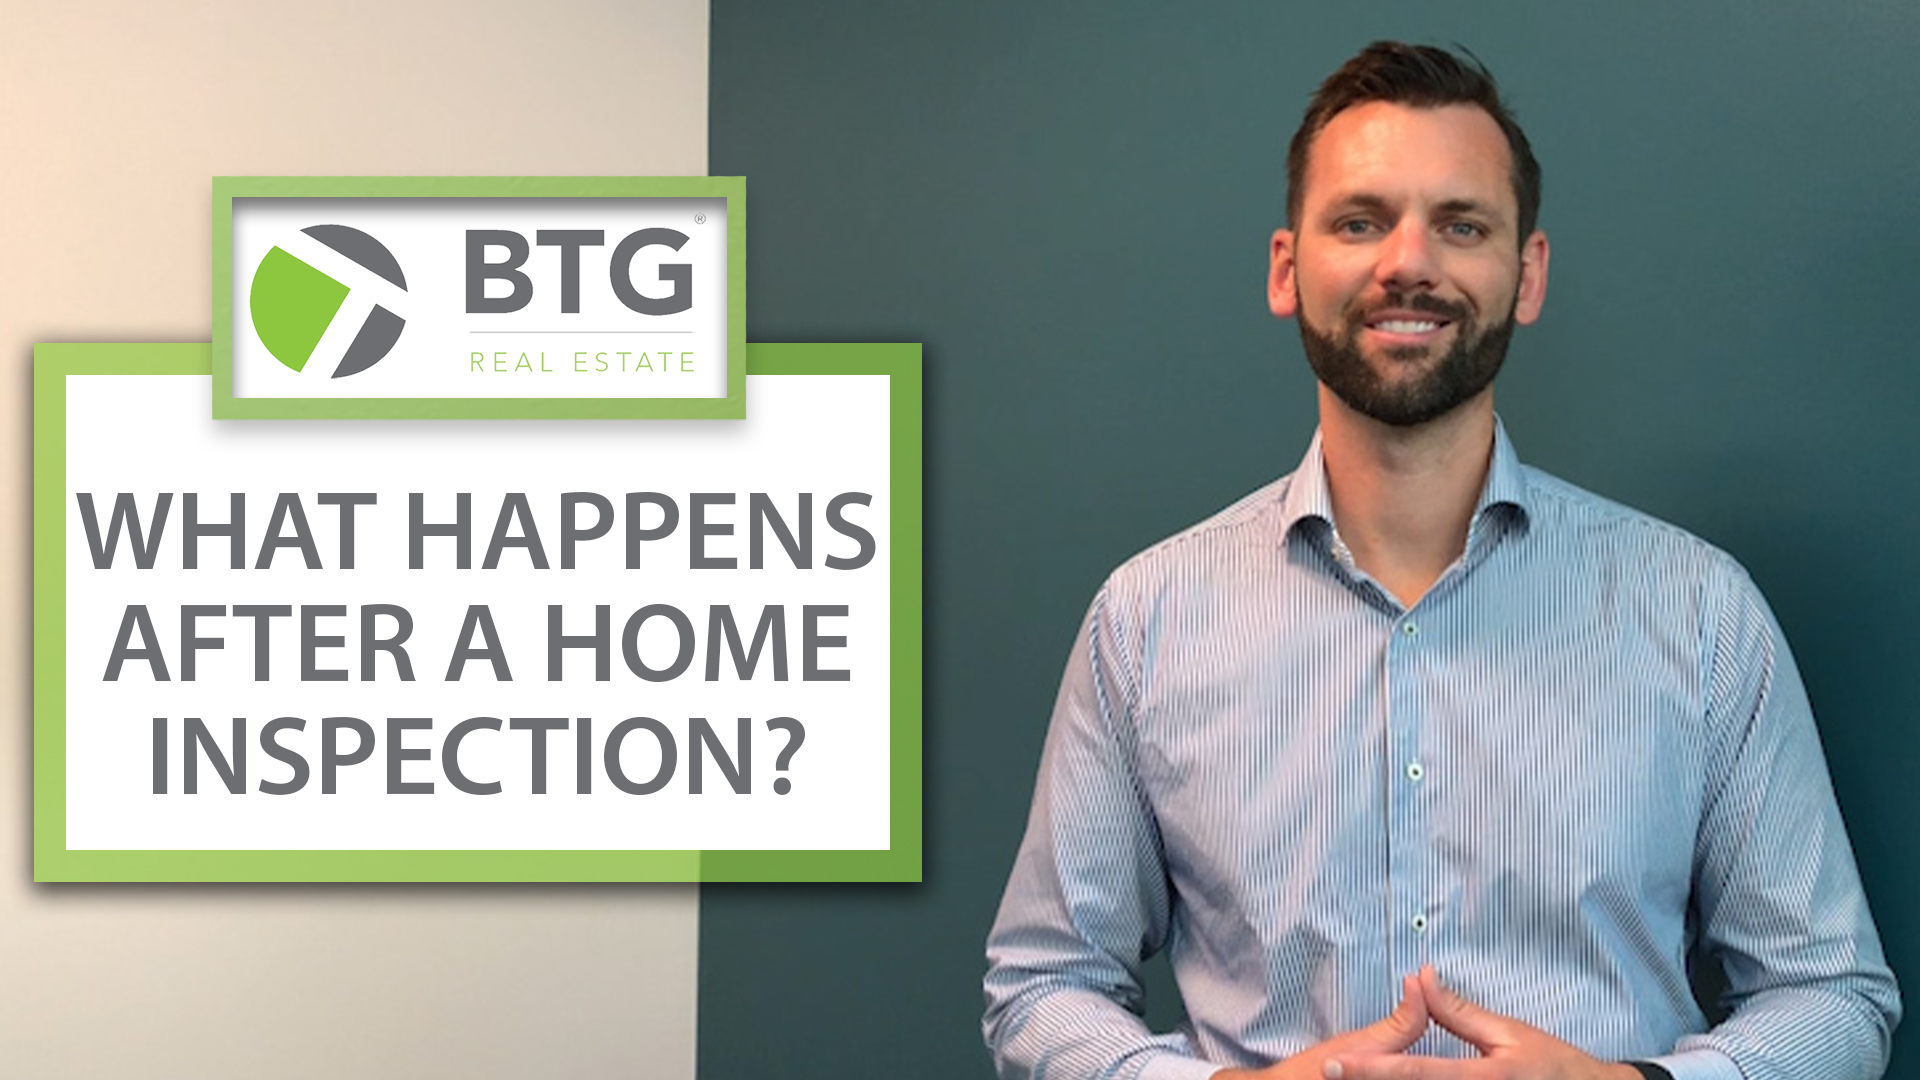 Here's What Happens After a Home Inspection